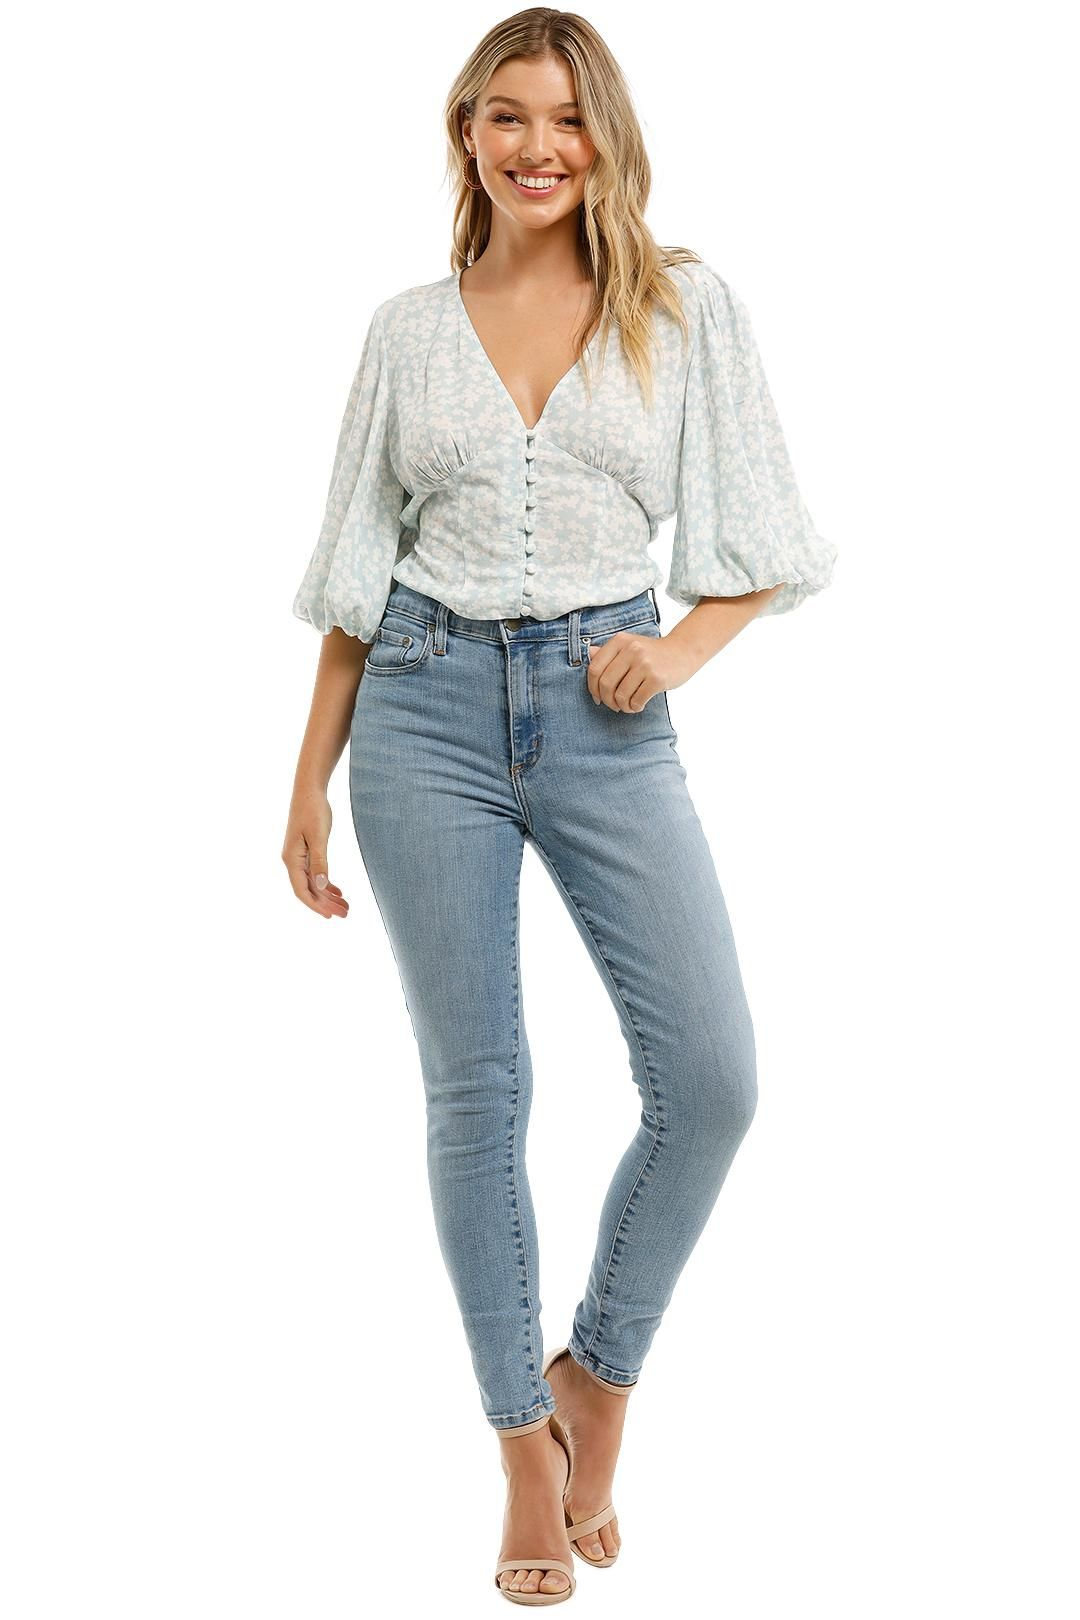 Charlie Holiday Cali Blouse Bloom